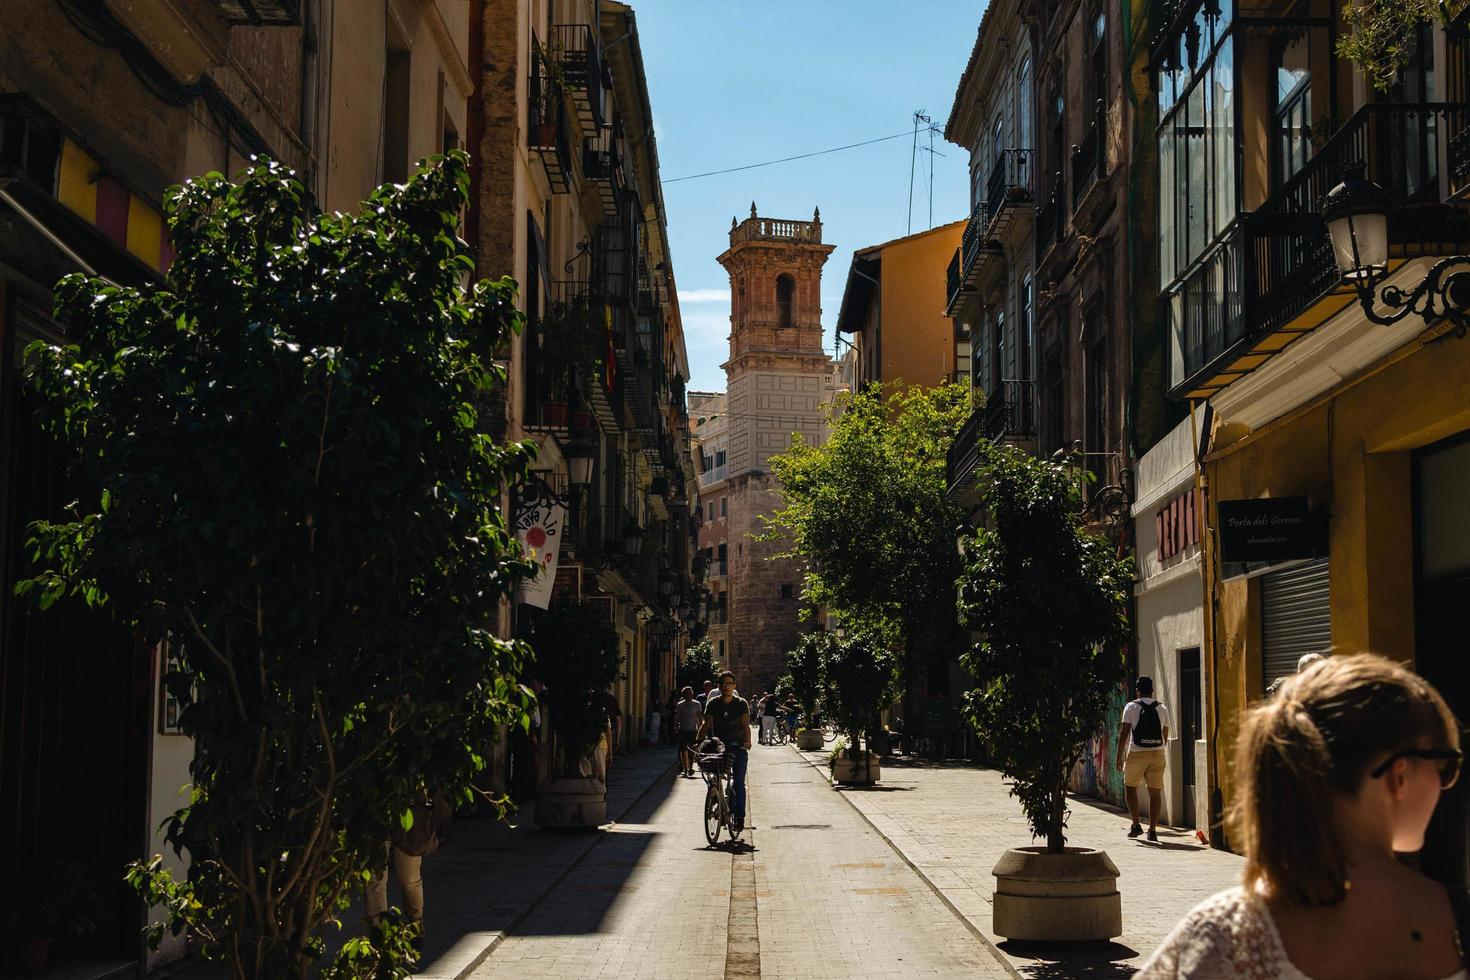 Valencia, Spain, 2017-Man riding bicycle in busy alley photo